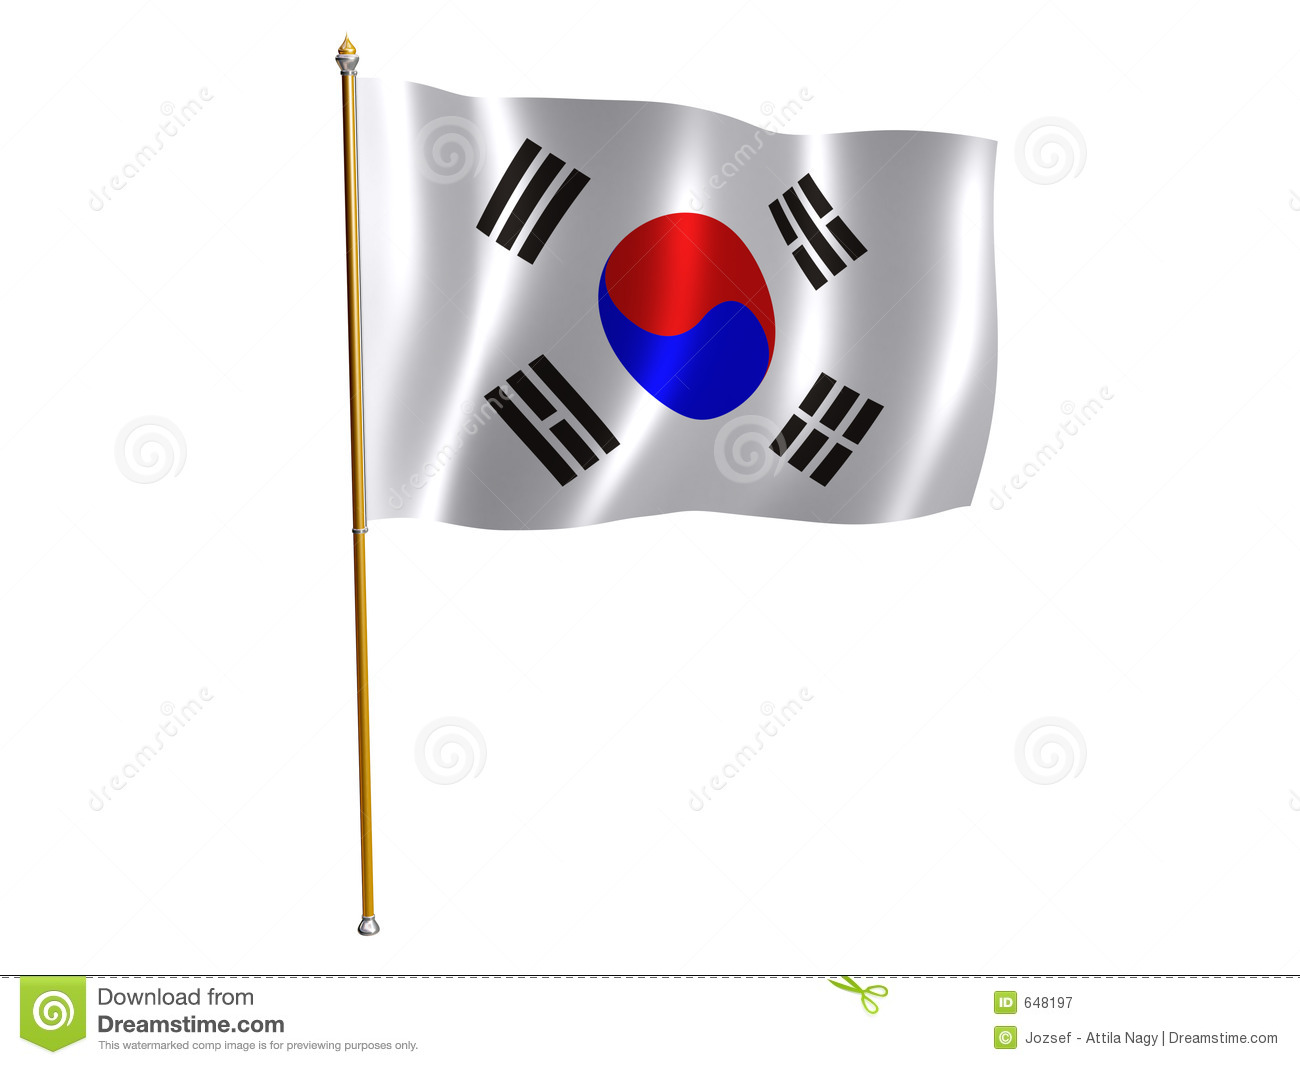 Republic of korea clipart #18